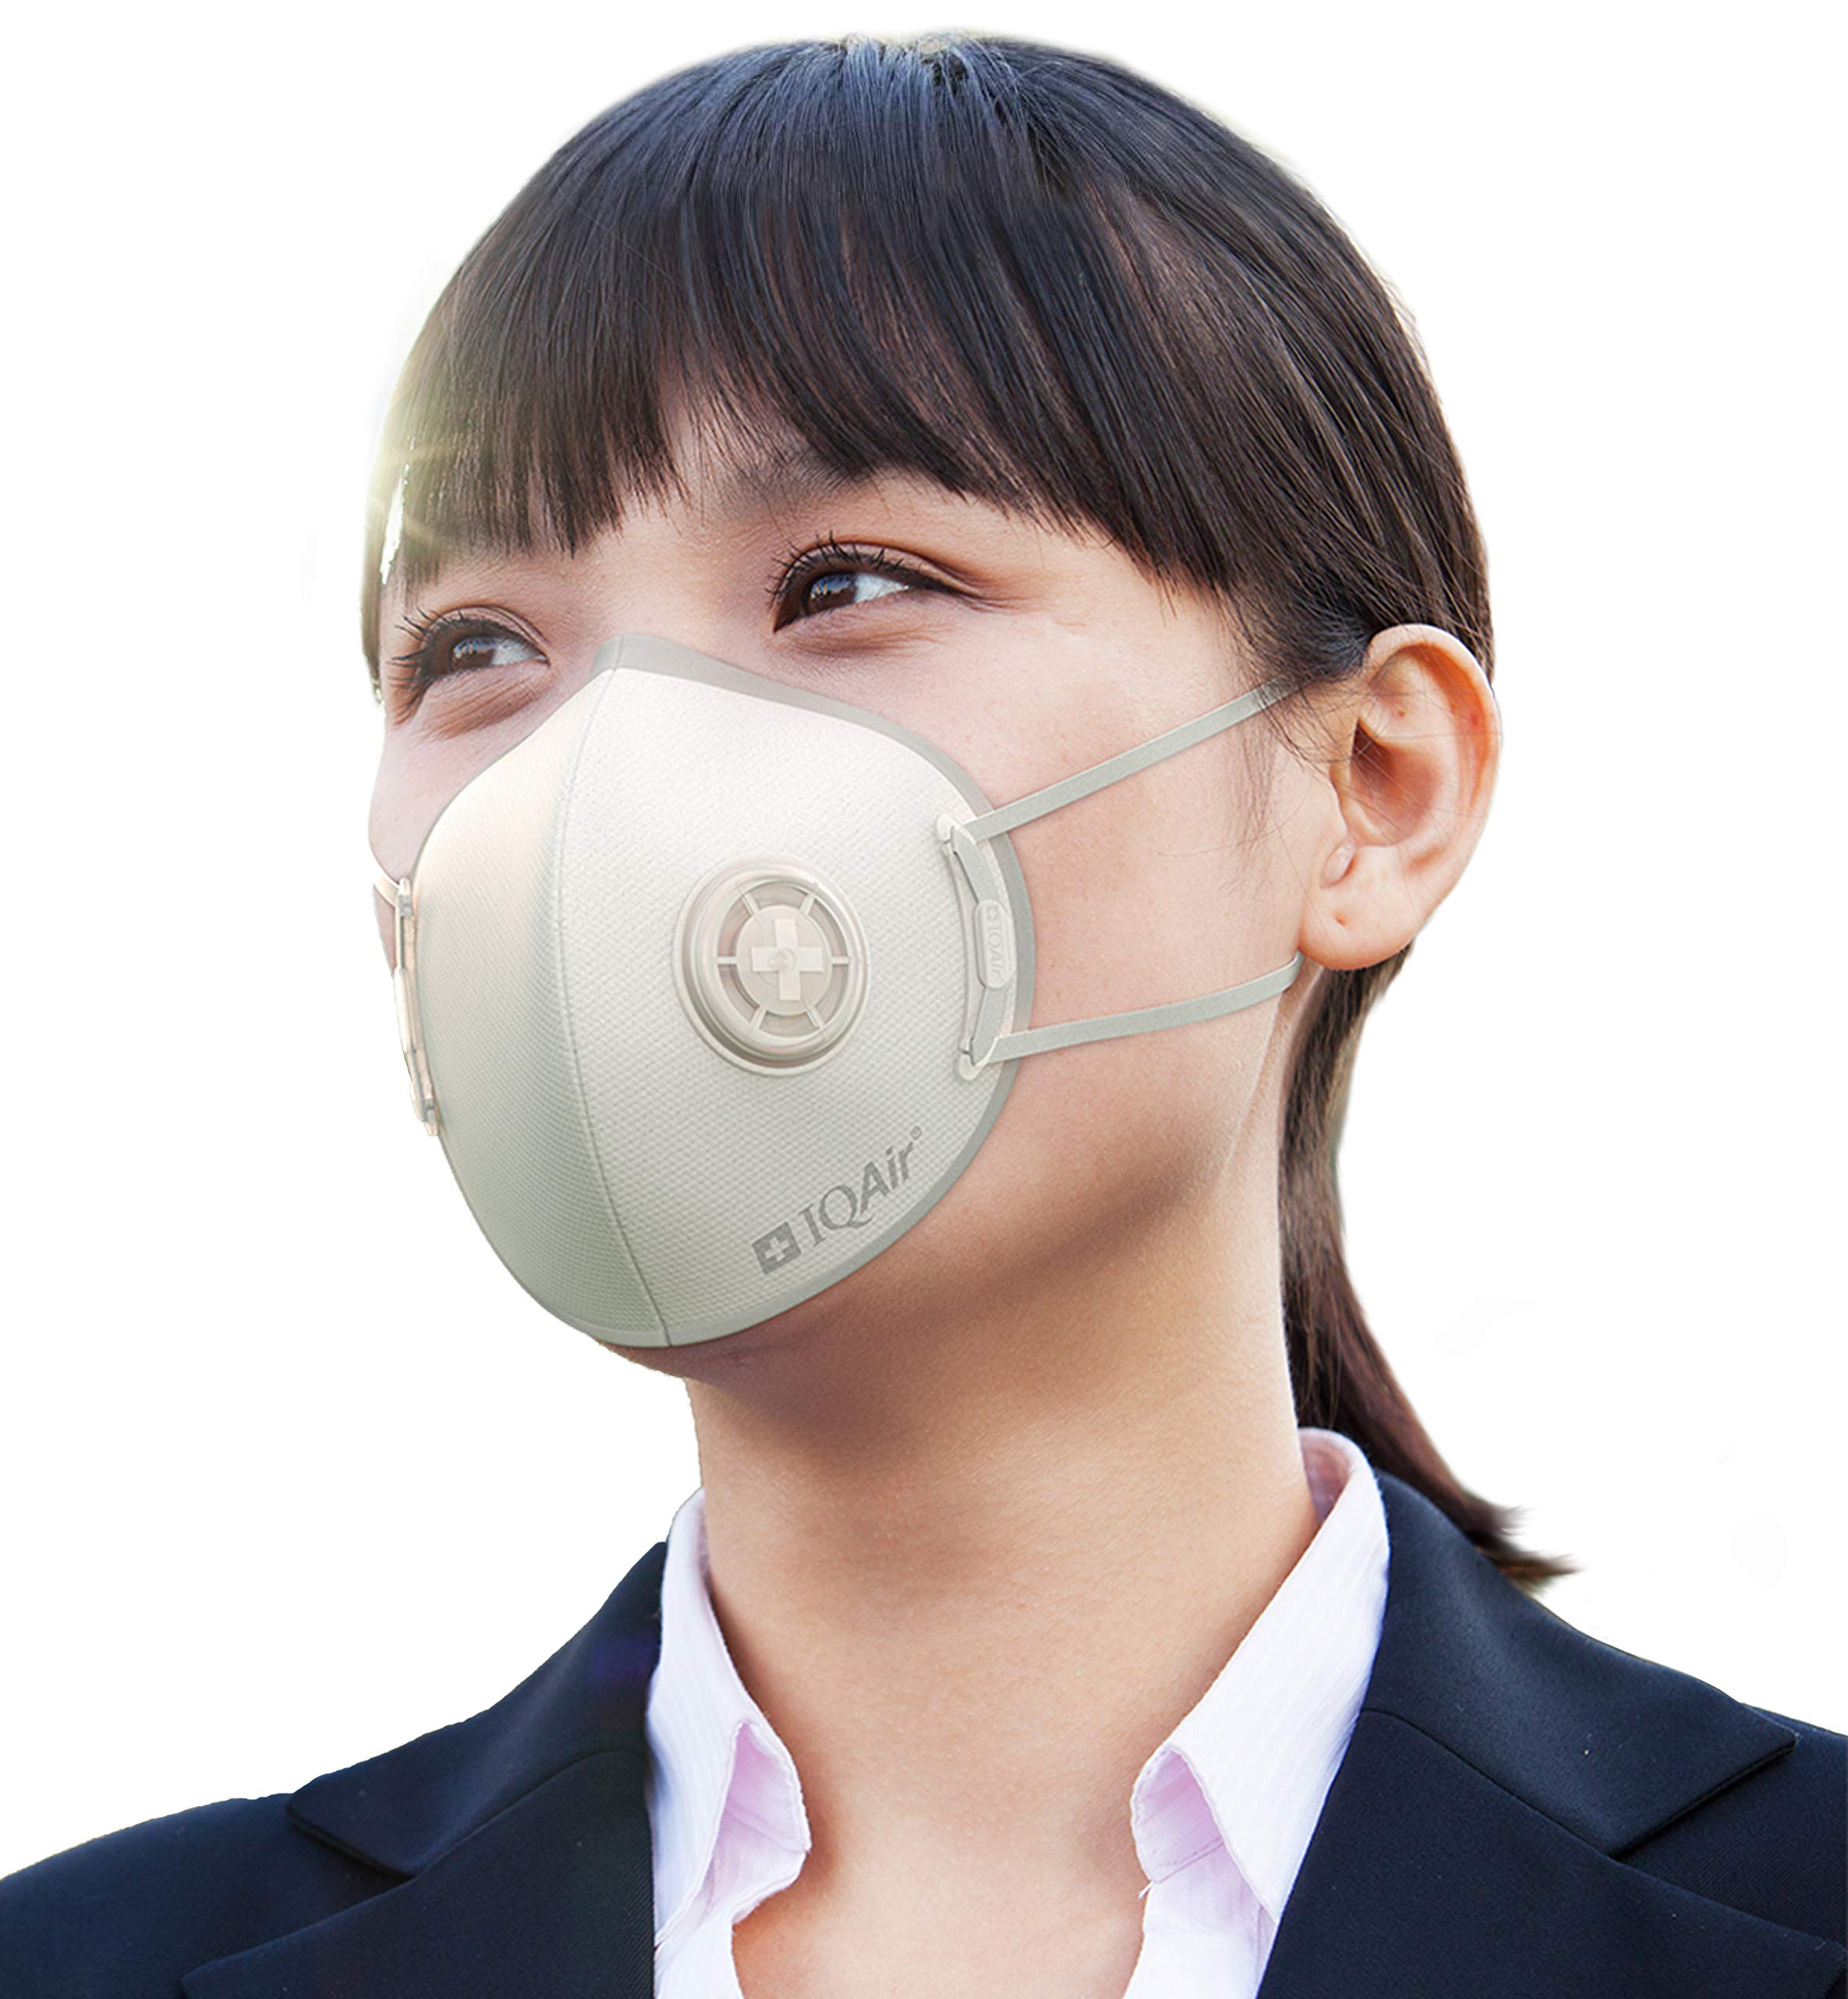 IQAir [Mask] Respirator for Adult with Medical-Grade HyperHEPA Material, KN95 certified, Anti Pollution PM2.5, Includes Breathing Valve - 10 Pack, Large